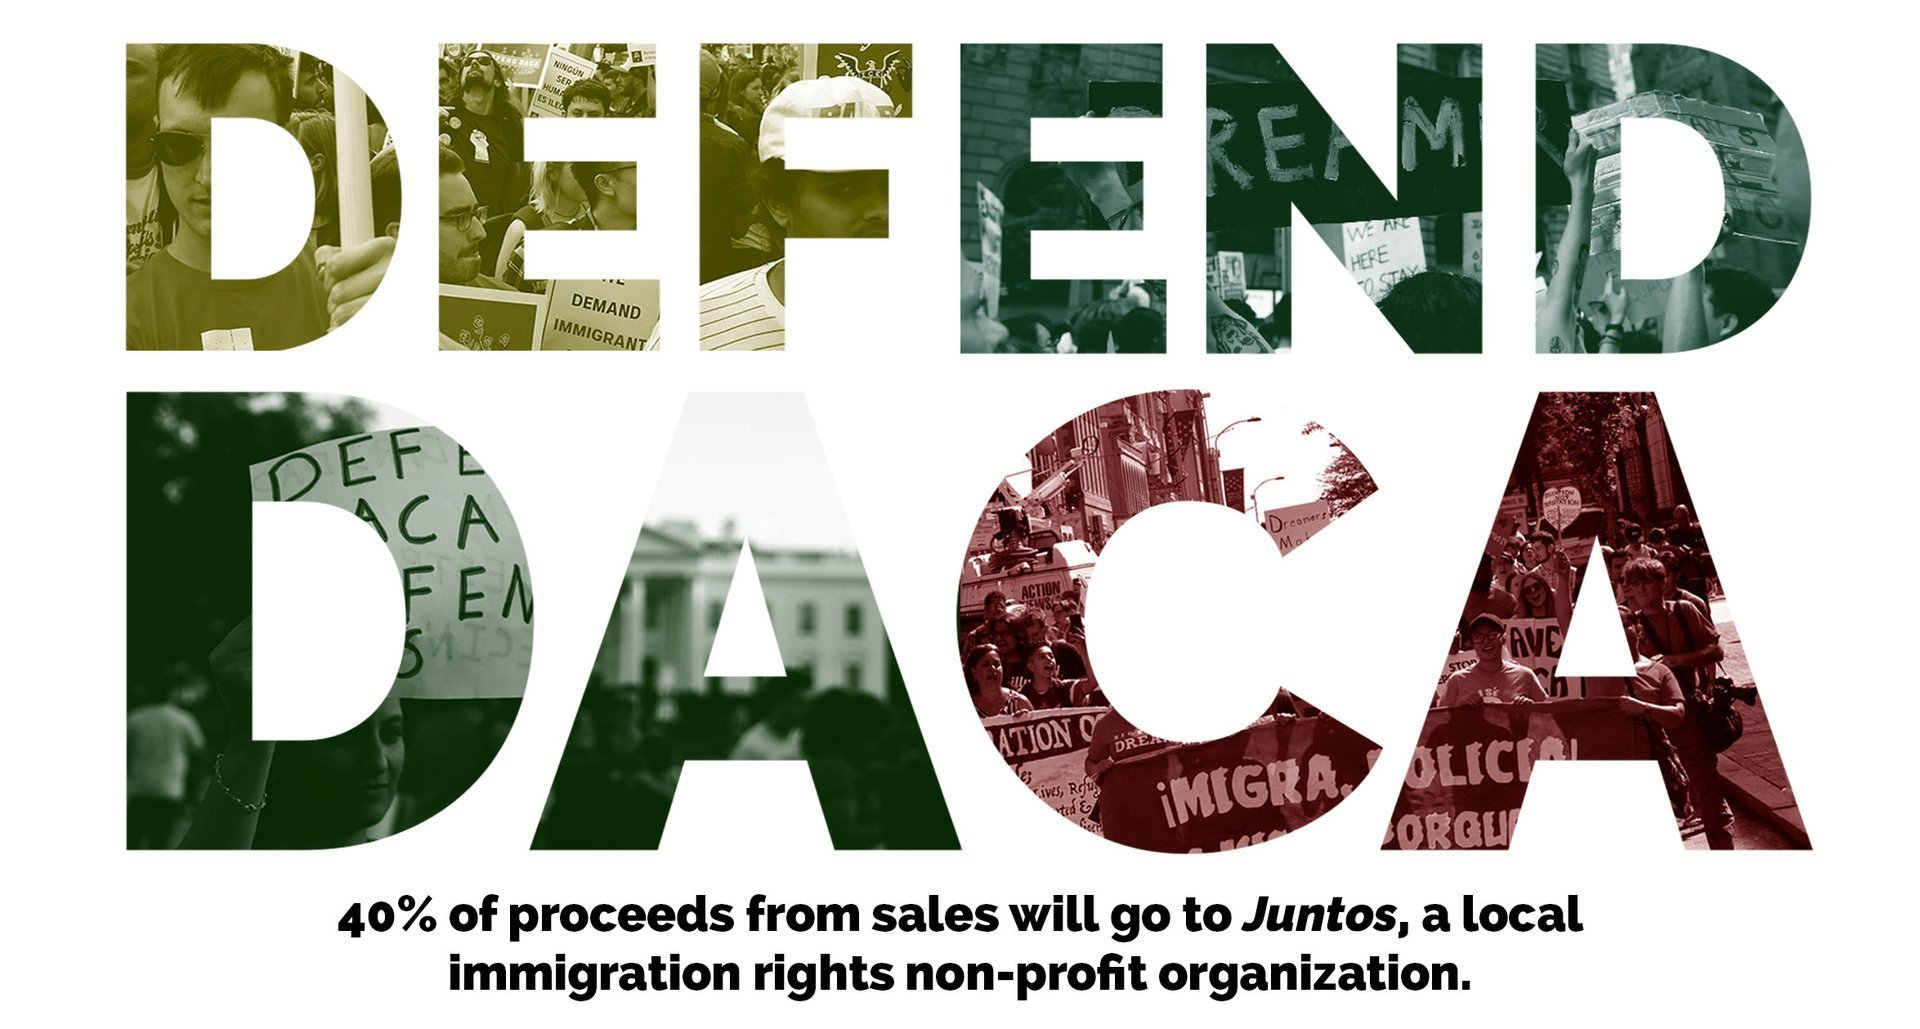 Join us as we Defend DACA and 25% of proceeds from sales will go to Juntos a local immigration rights